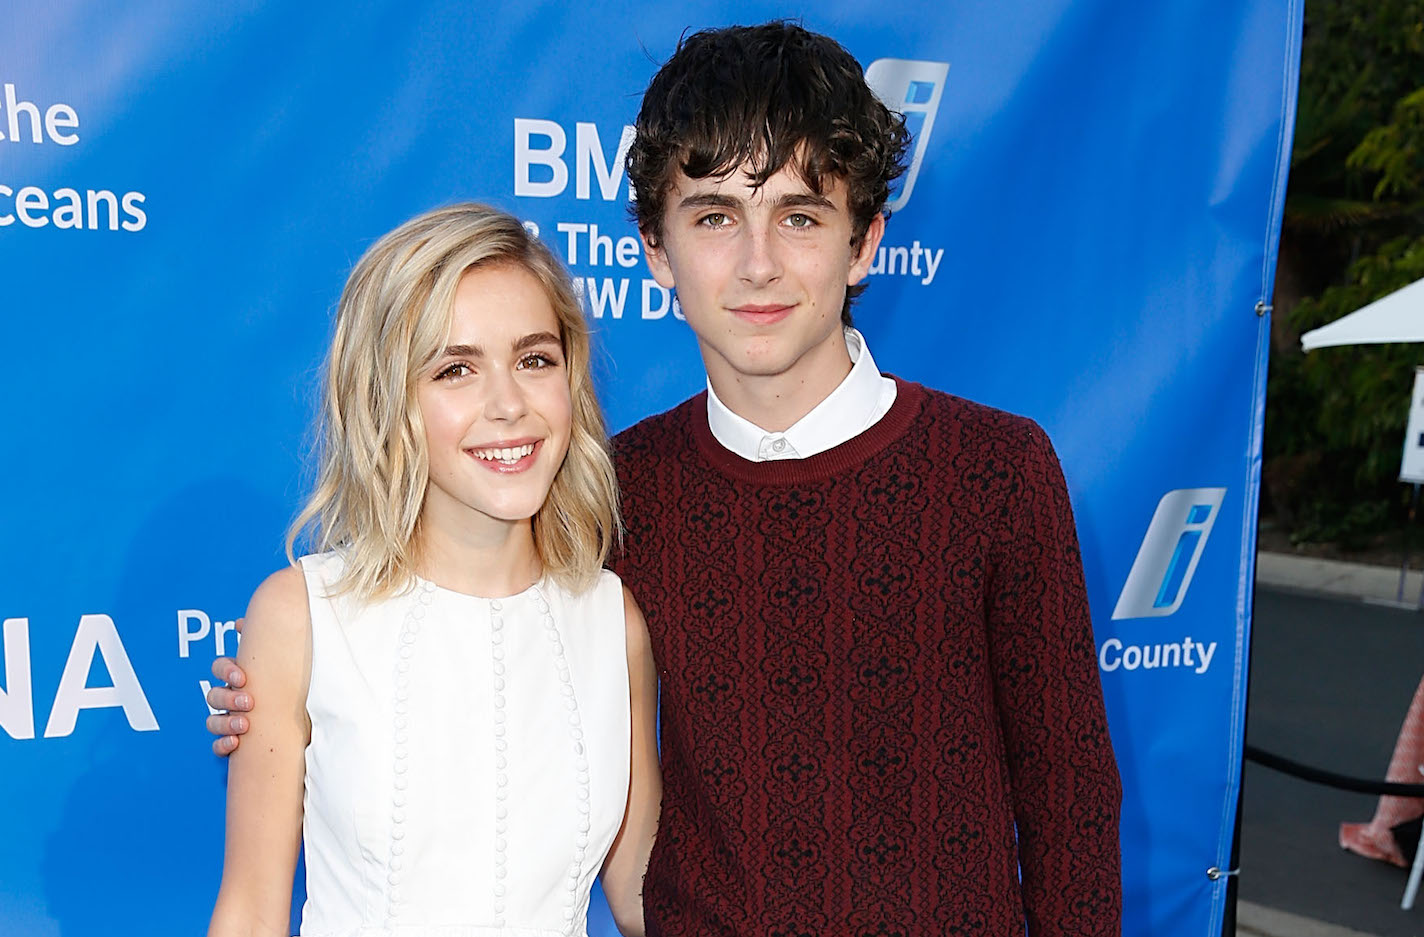 https://www.girlfriend.com.au/media/15929/kiernan-shipka-timothee-chalamet.jpg